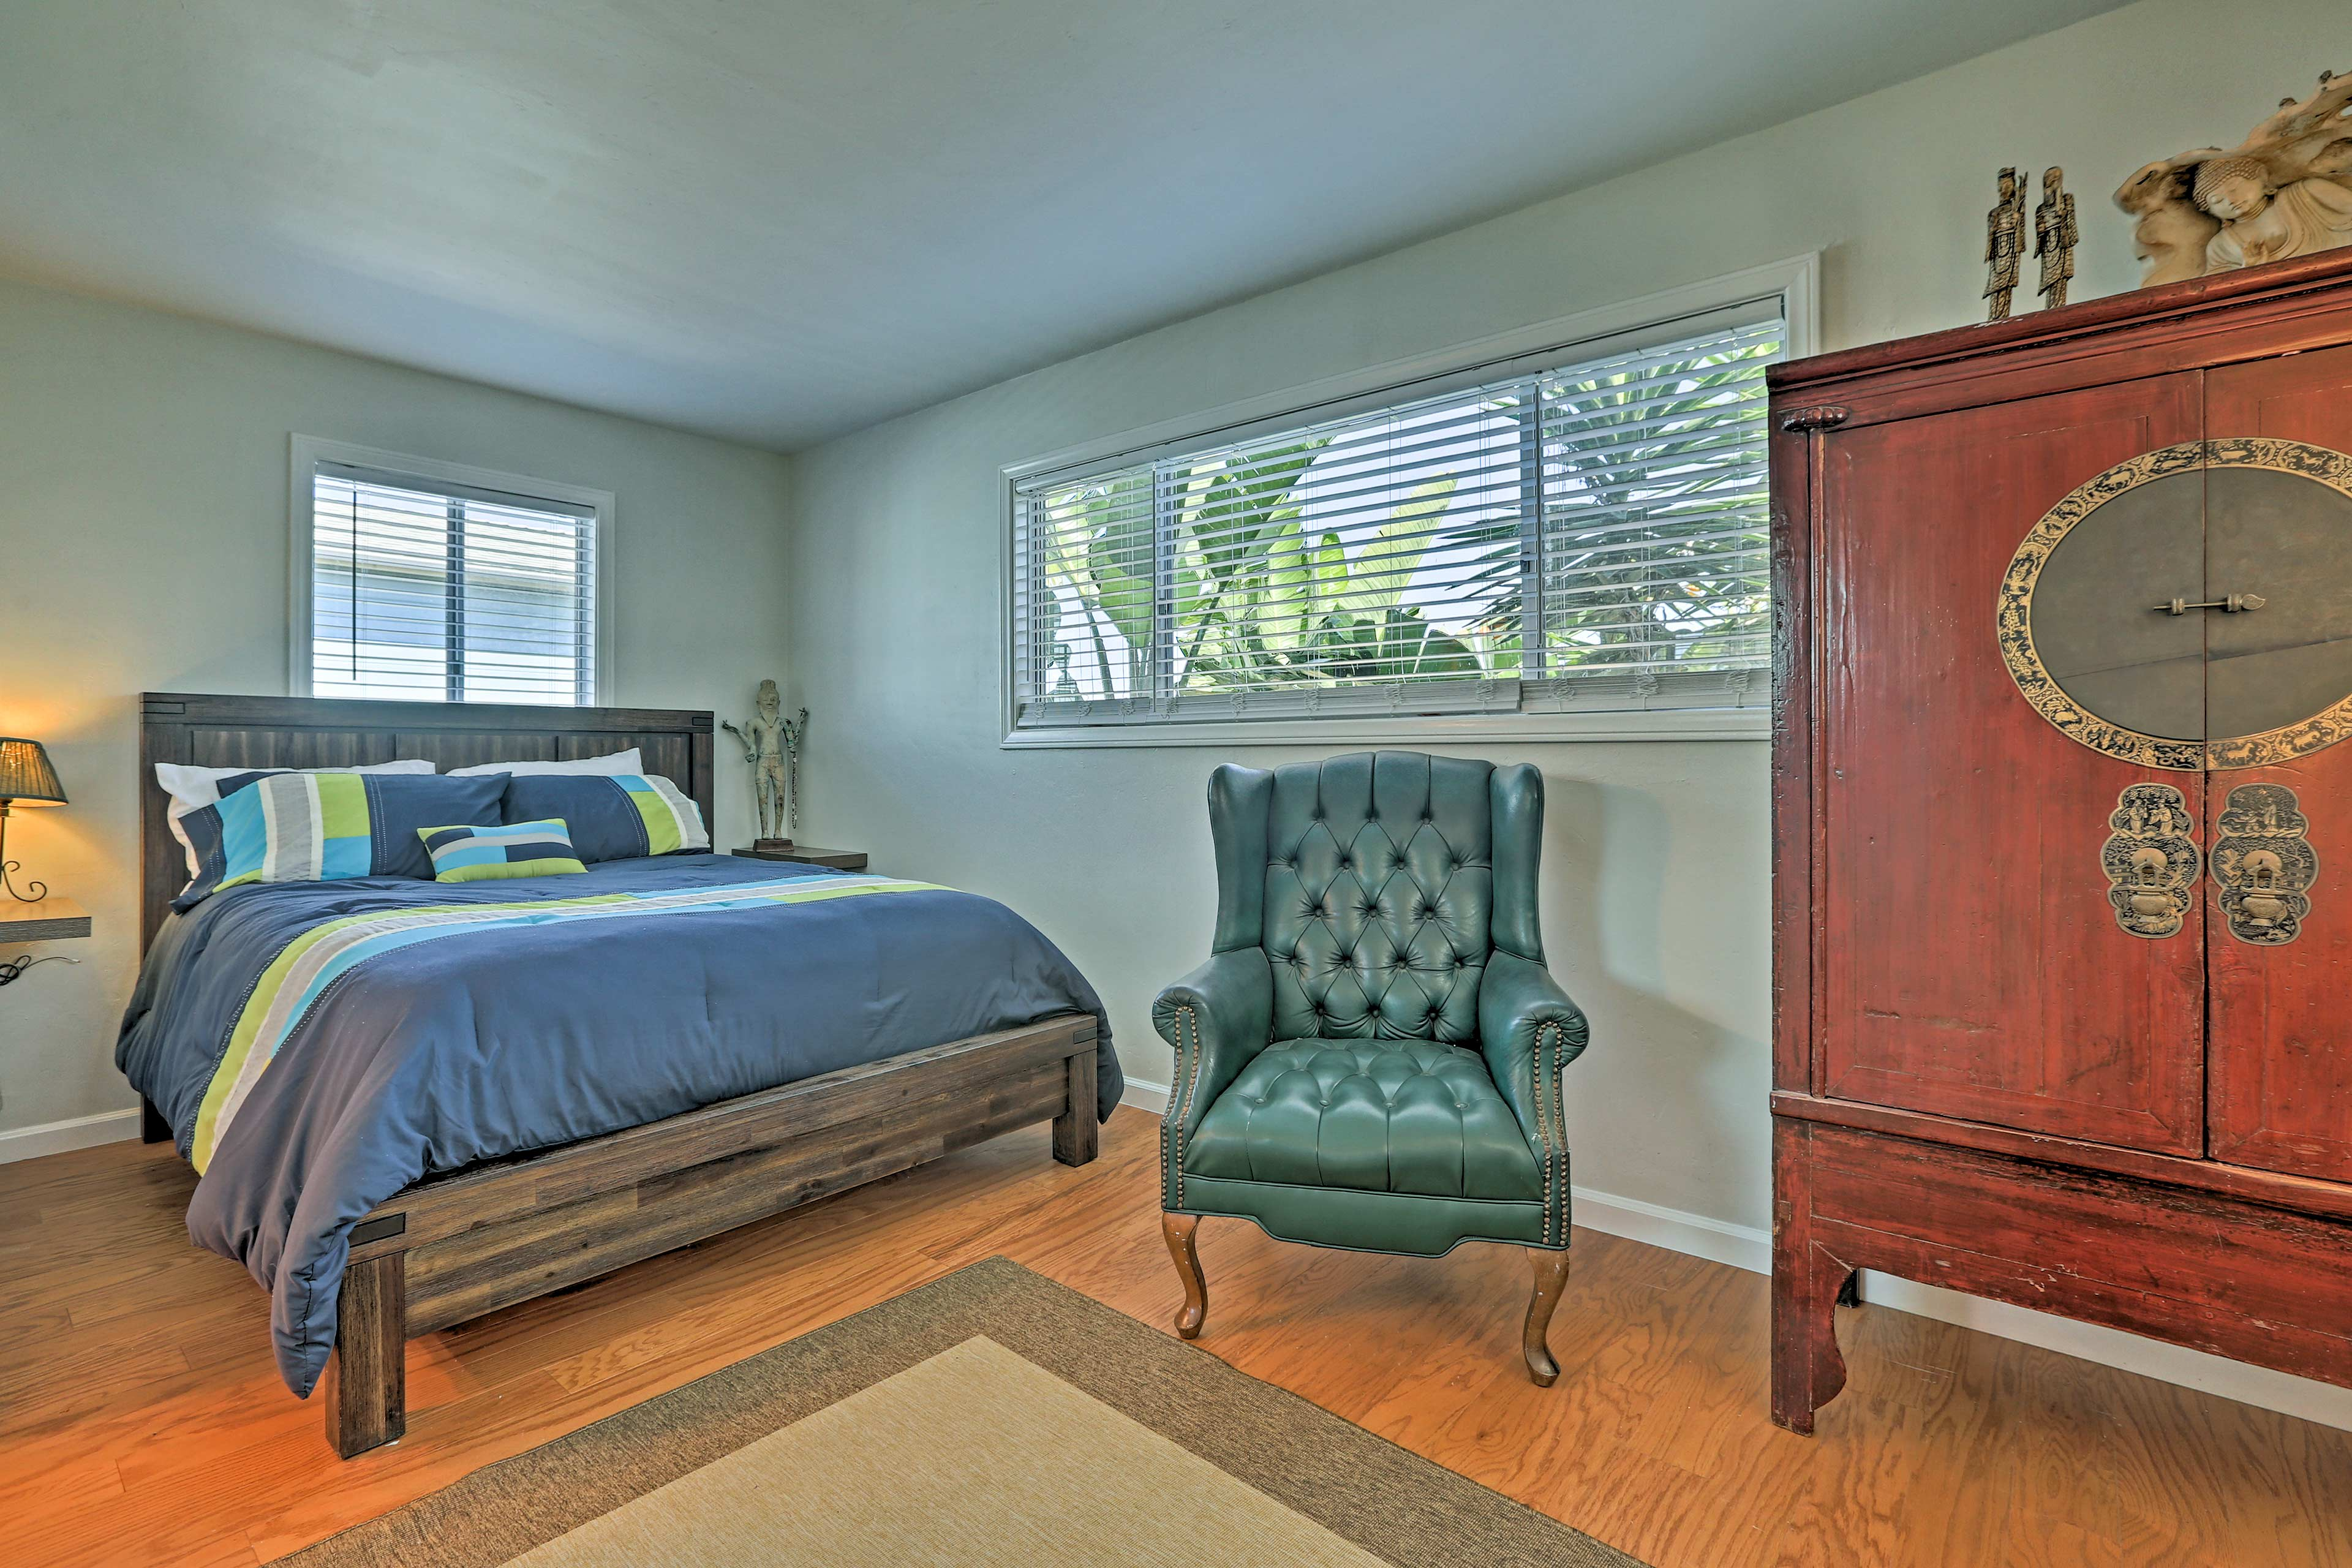 Retreat to one of the 3 bedrooms for a peaceful night's sleep.